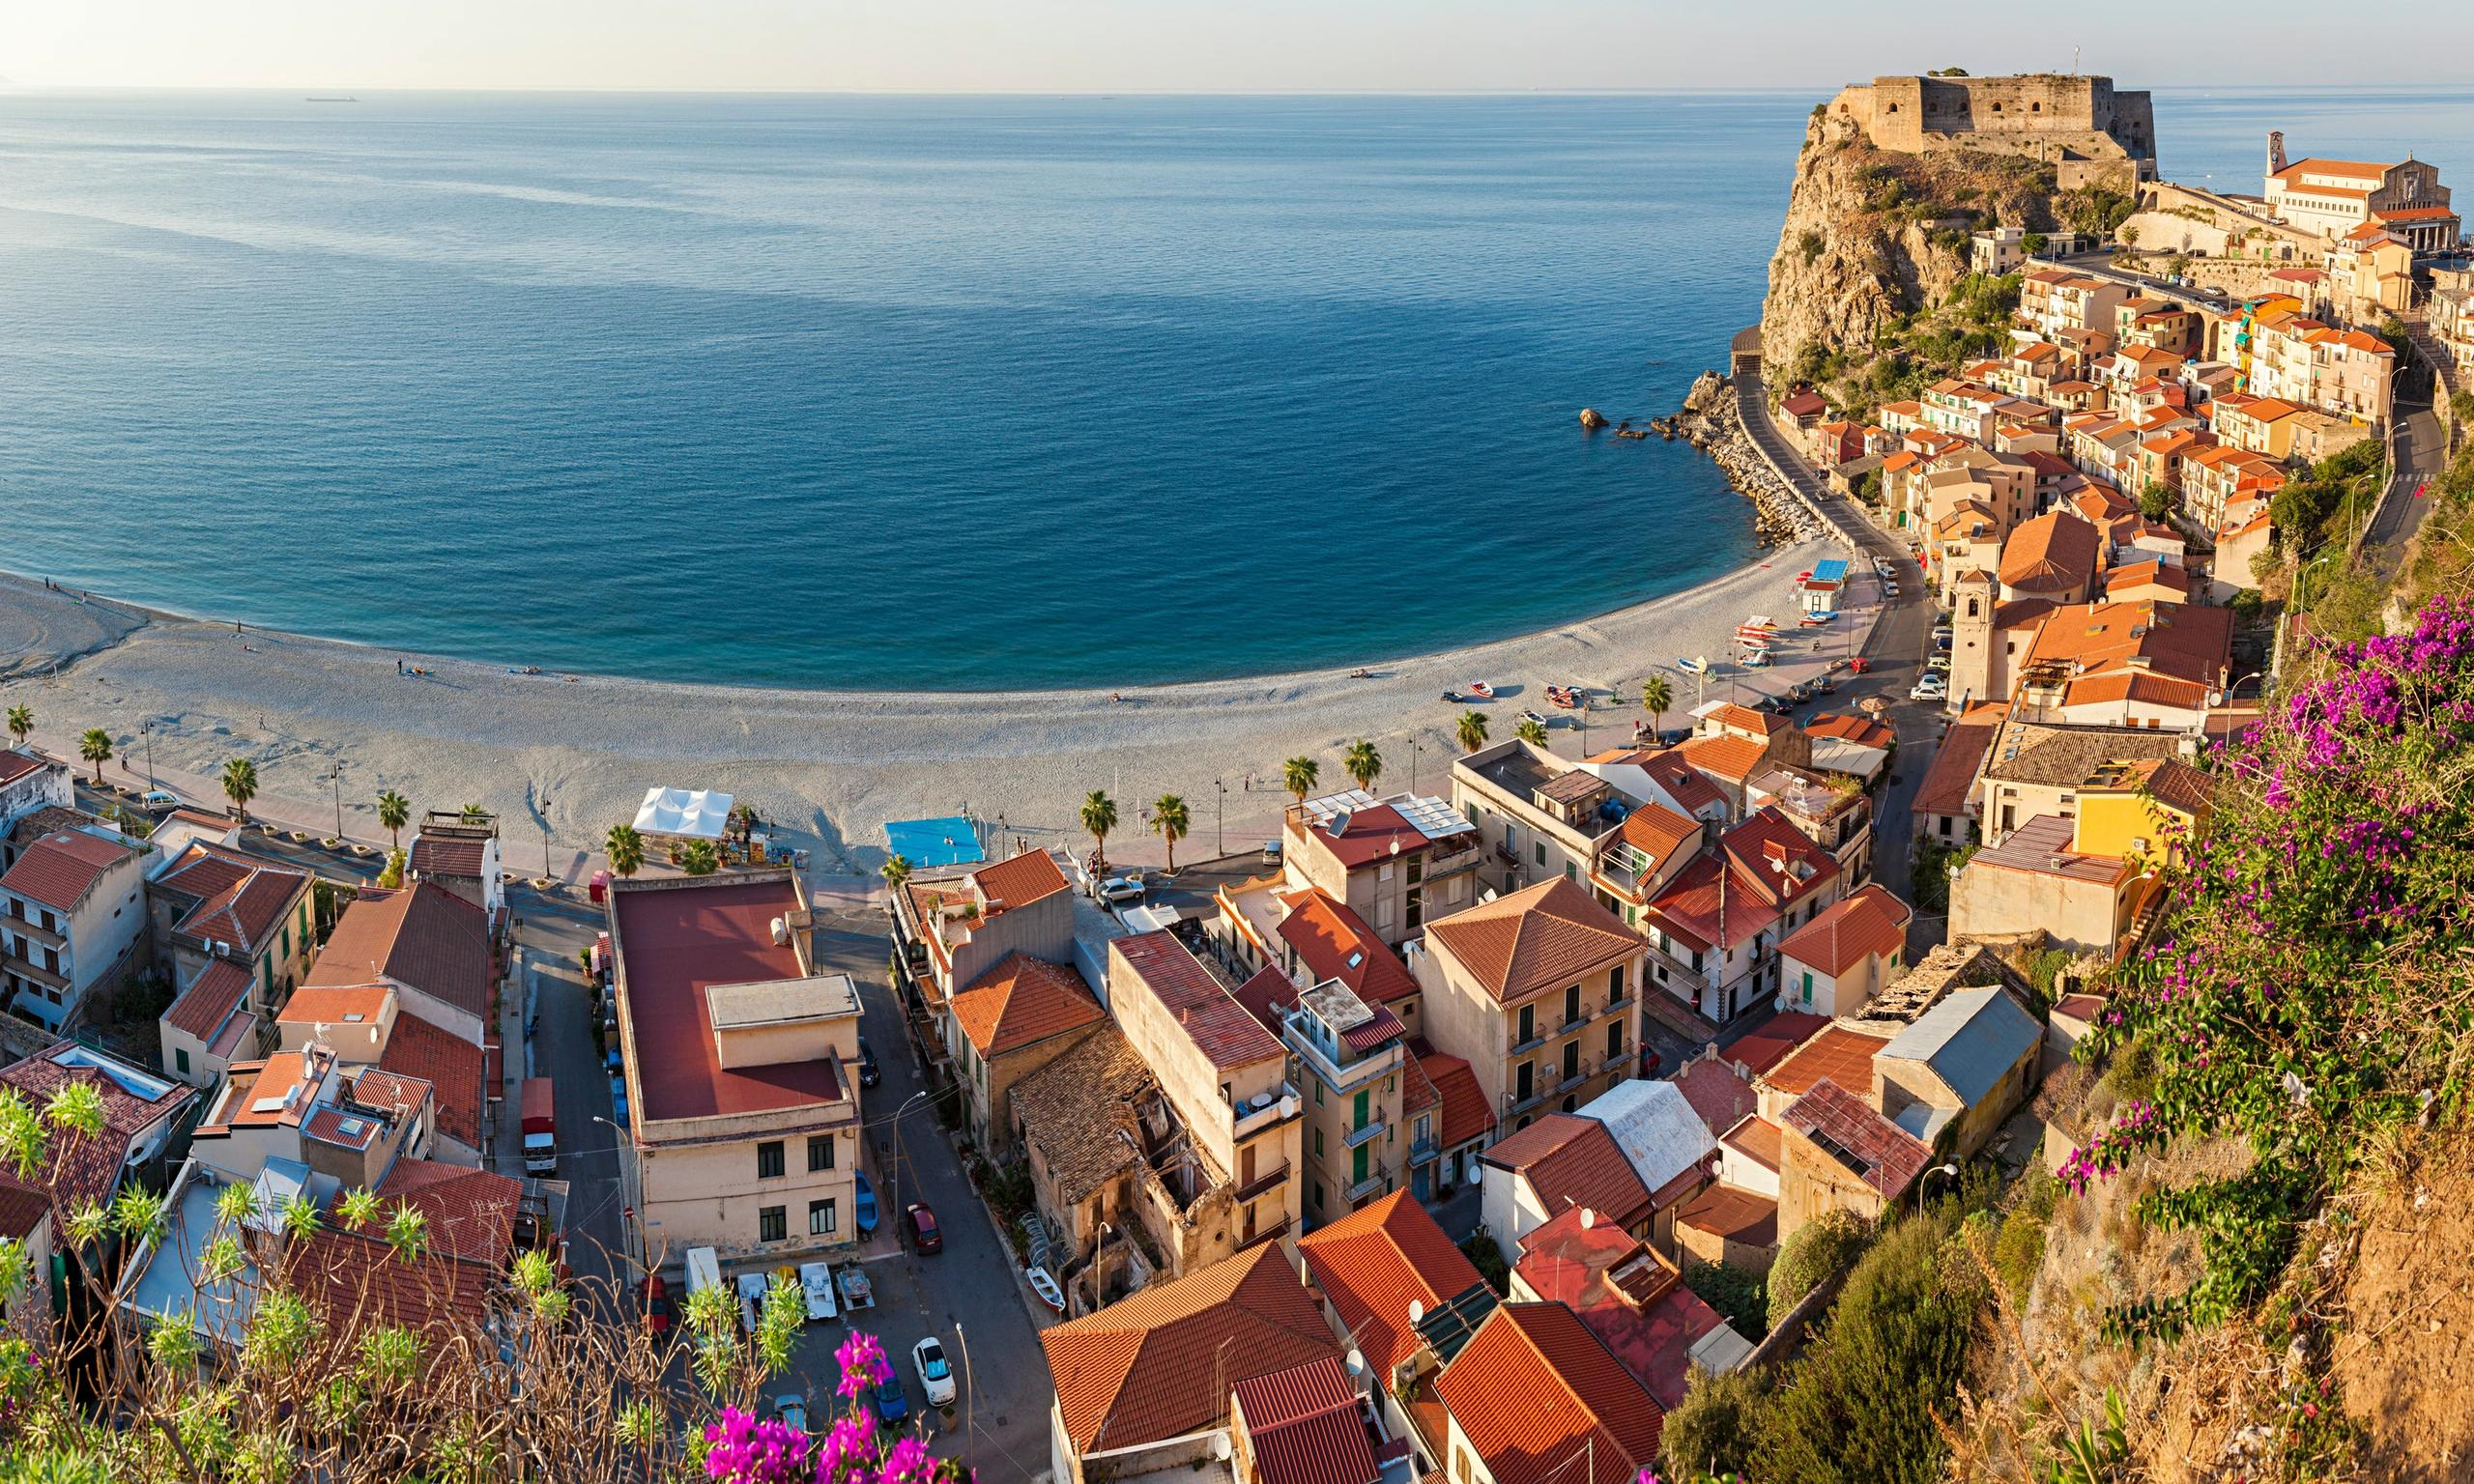 Holiday Guide To Calabria Italy The Best Beaches Bars Restaurants And Hotels Shop Your Way